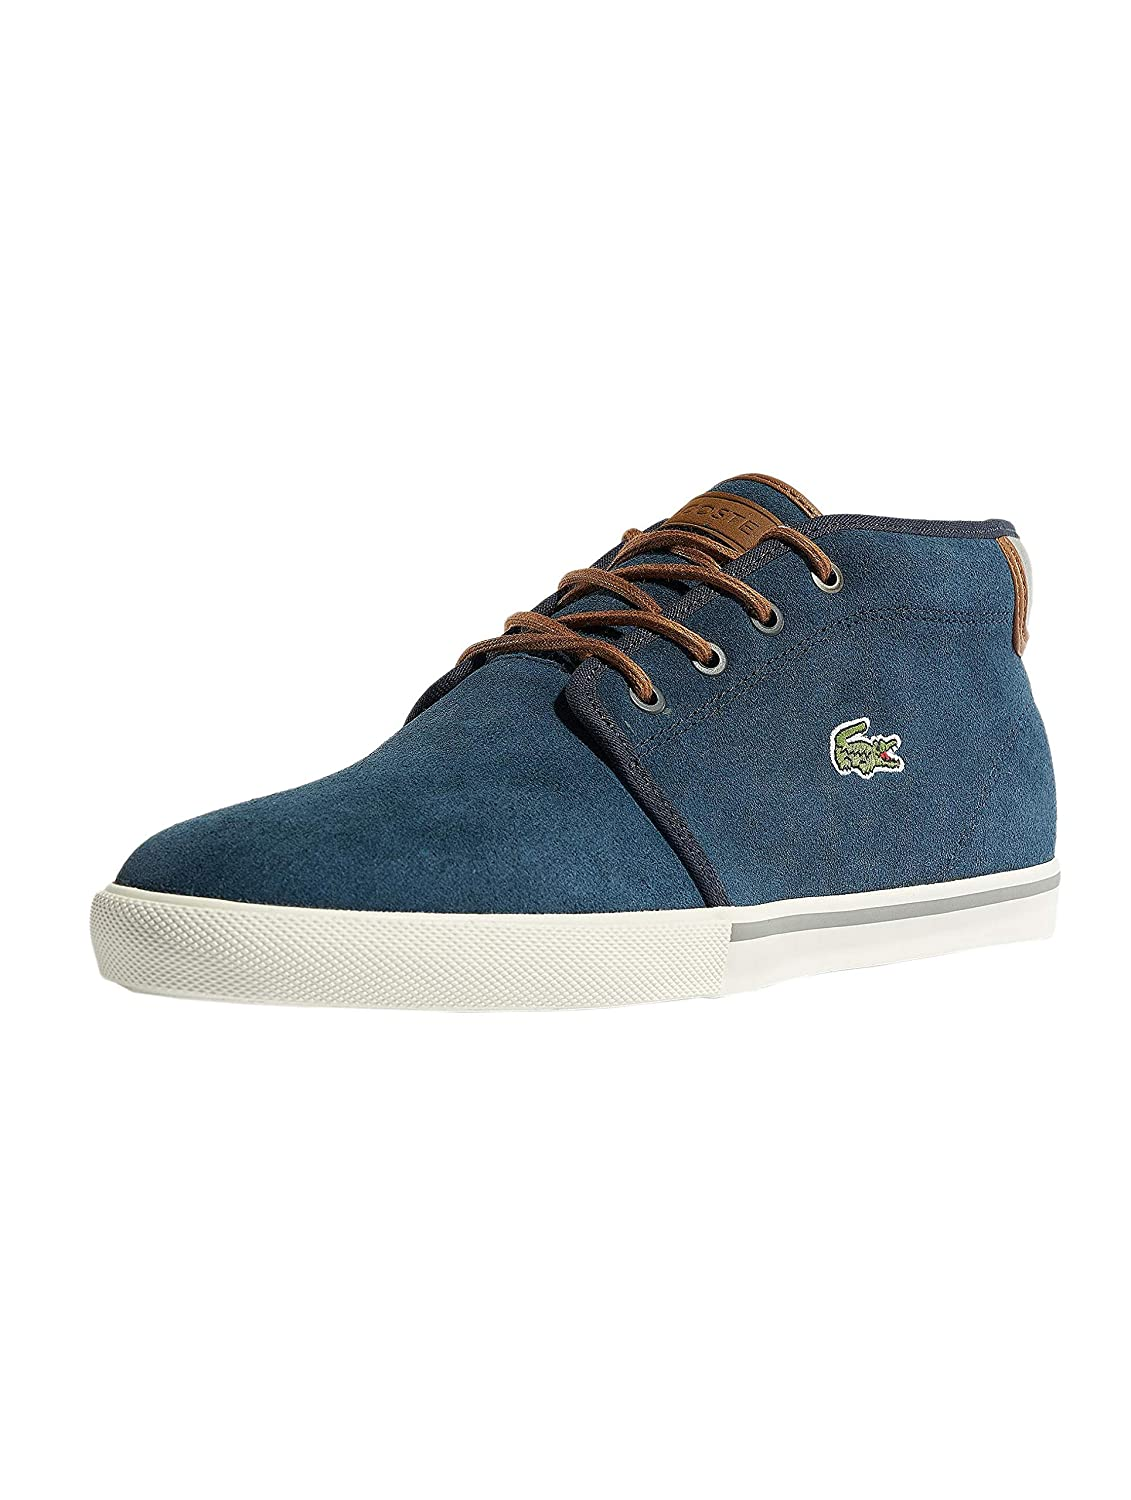 Lacoste Hombres Calzado/Boots Ampthill 318 1 CAM